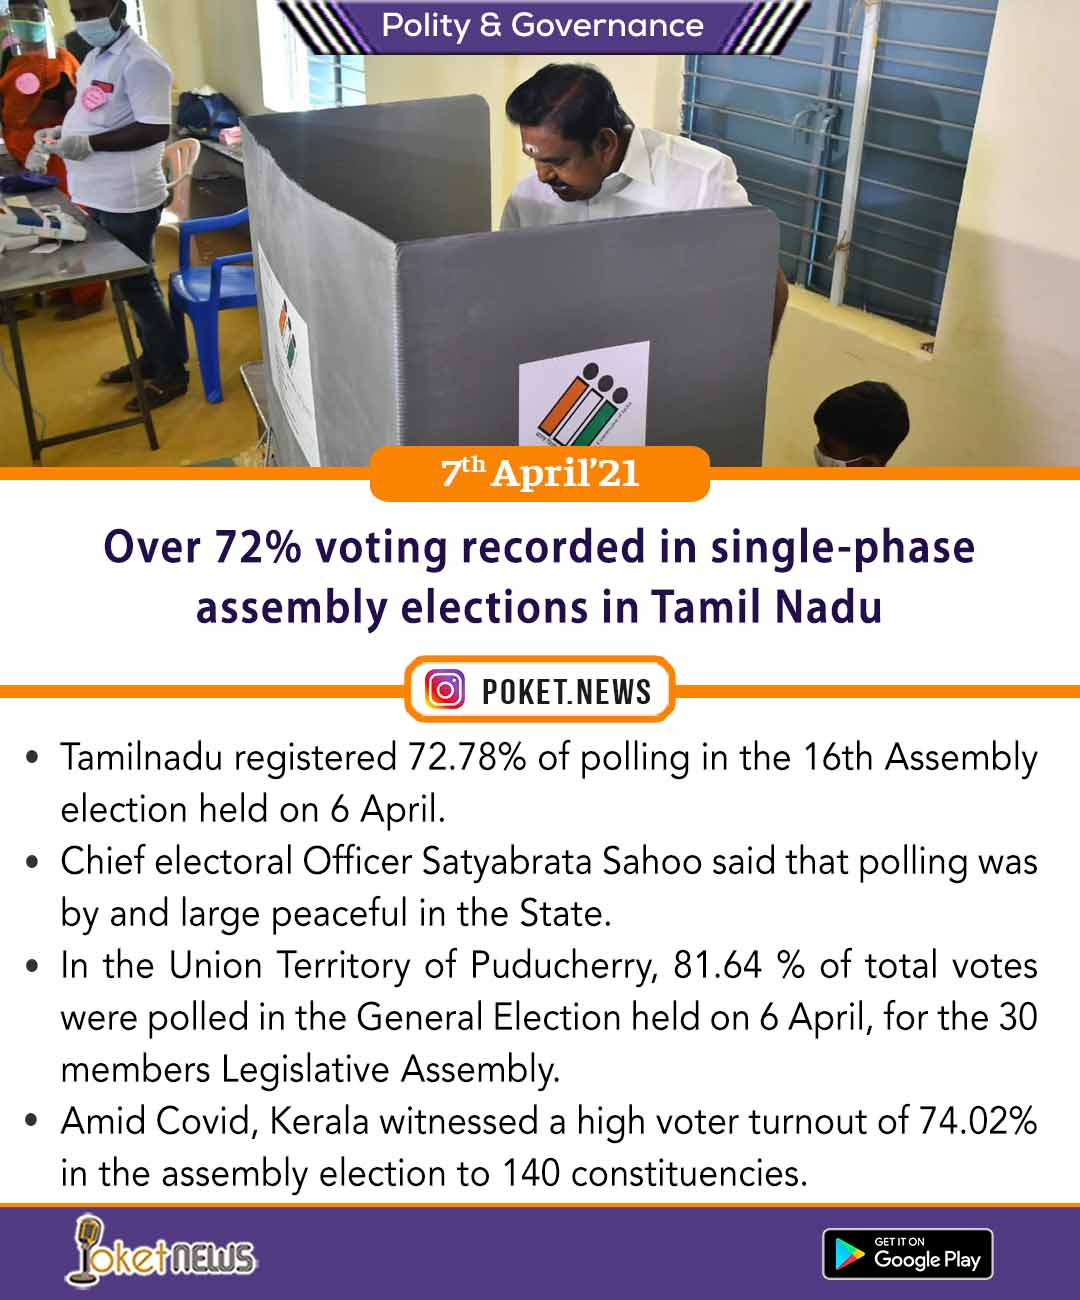 Over 72% voting recorded in single-phase assembly elections in Tamil Nadu